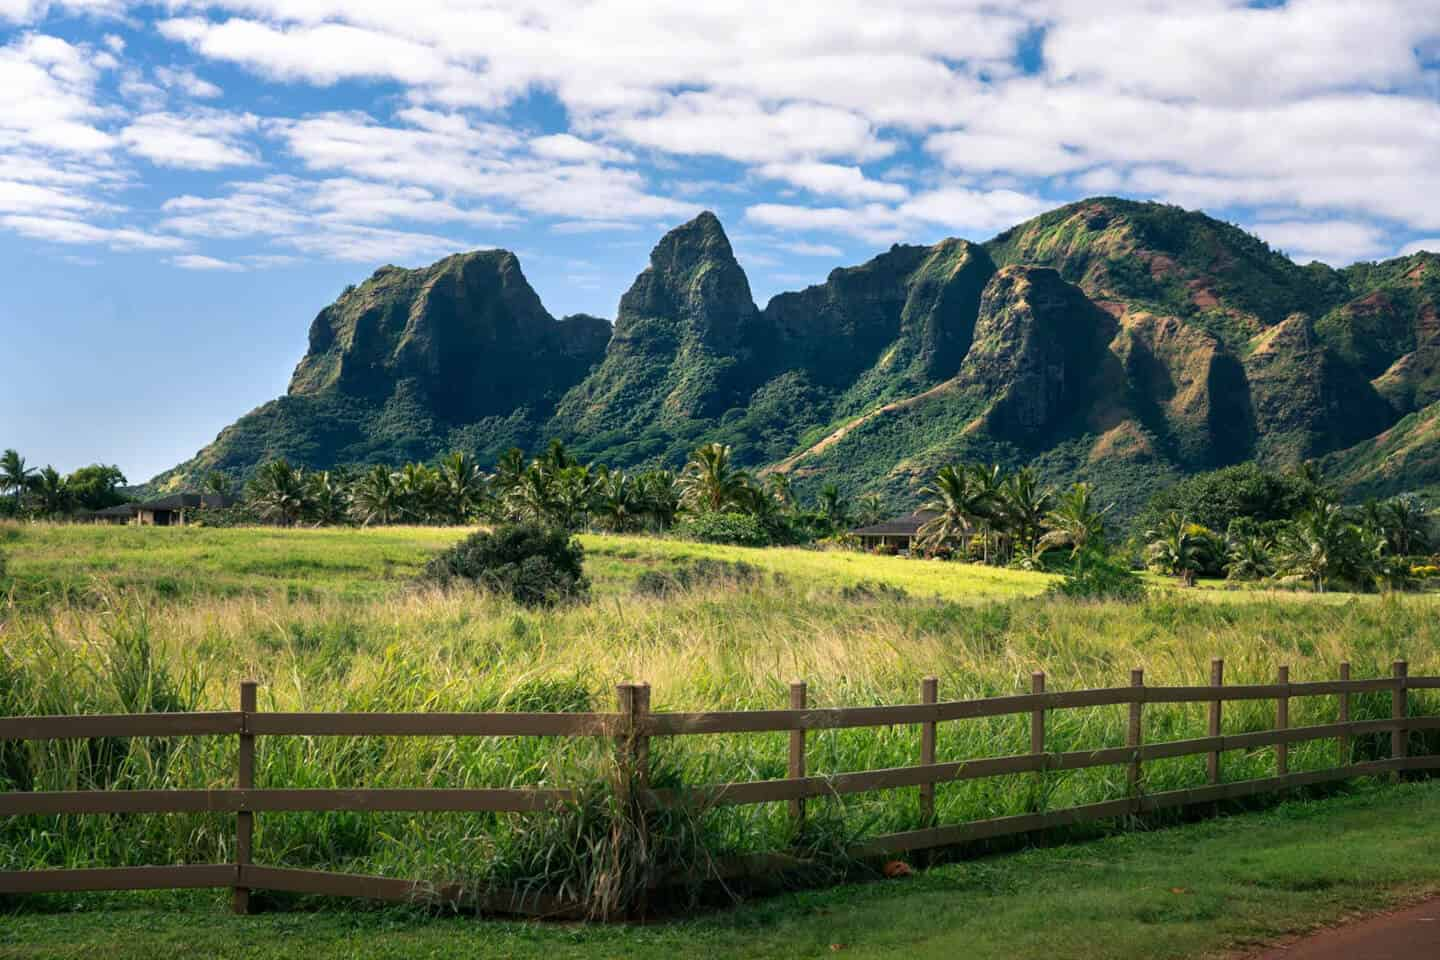 From the moment you arrive in Kauai for your 7 day itinerary, you will be immersed in natural beauty.